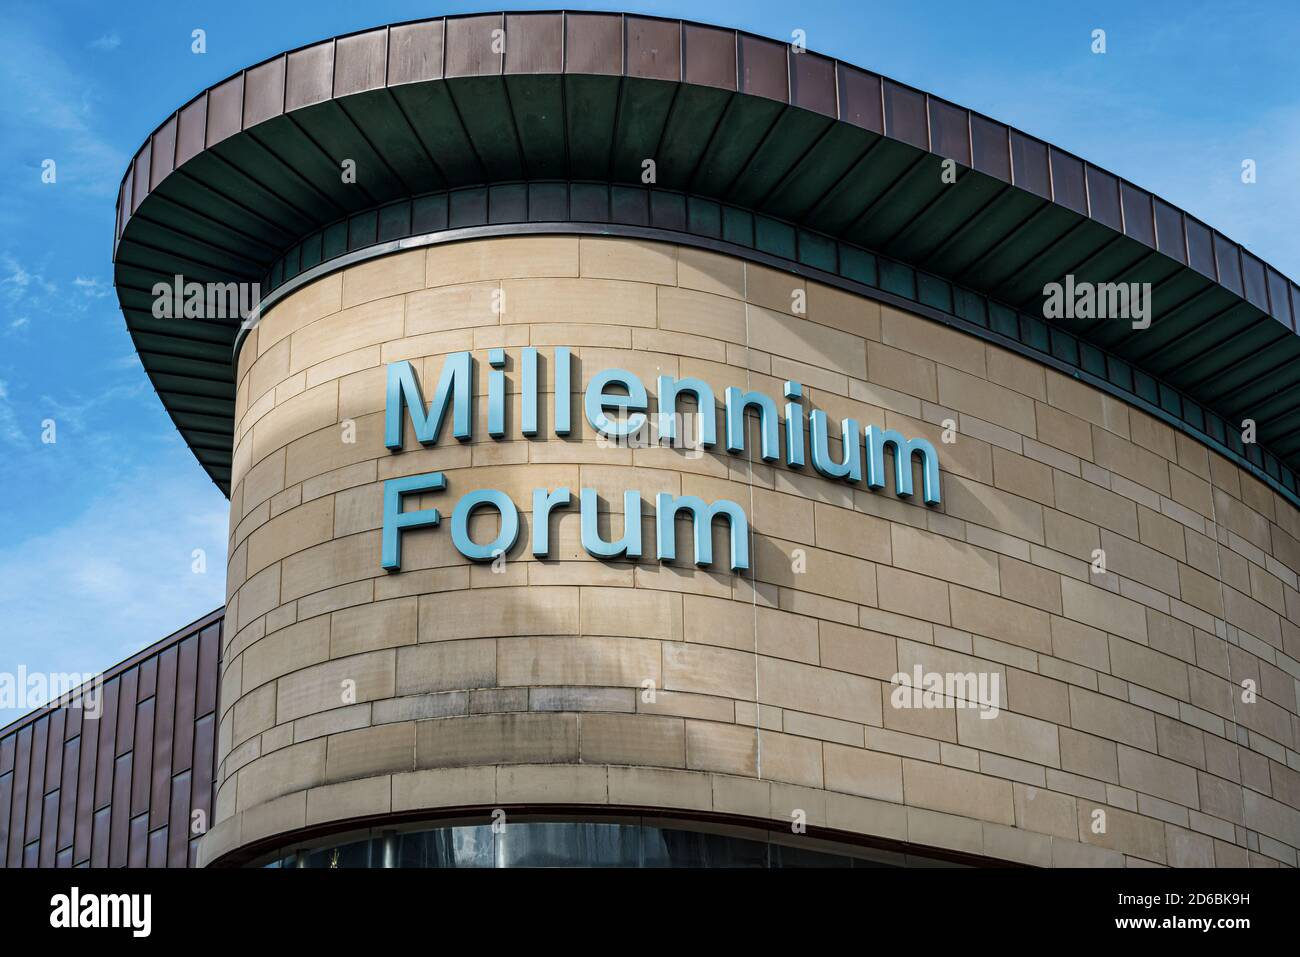 Derry, Northern Ireland- Sept 27, 2020: The Sign for Millennium Forum  in Derry. Stock Photo